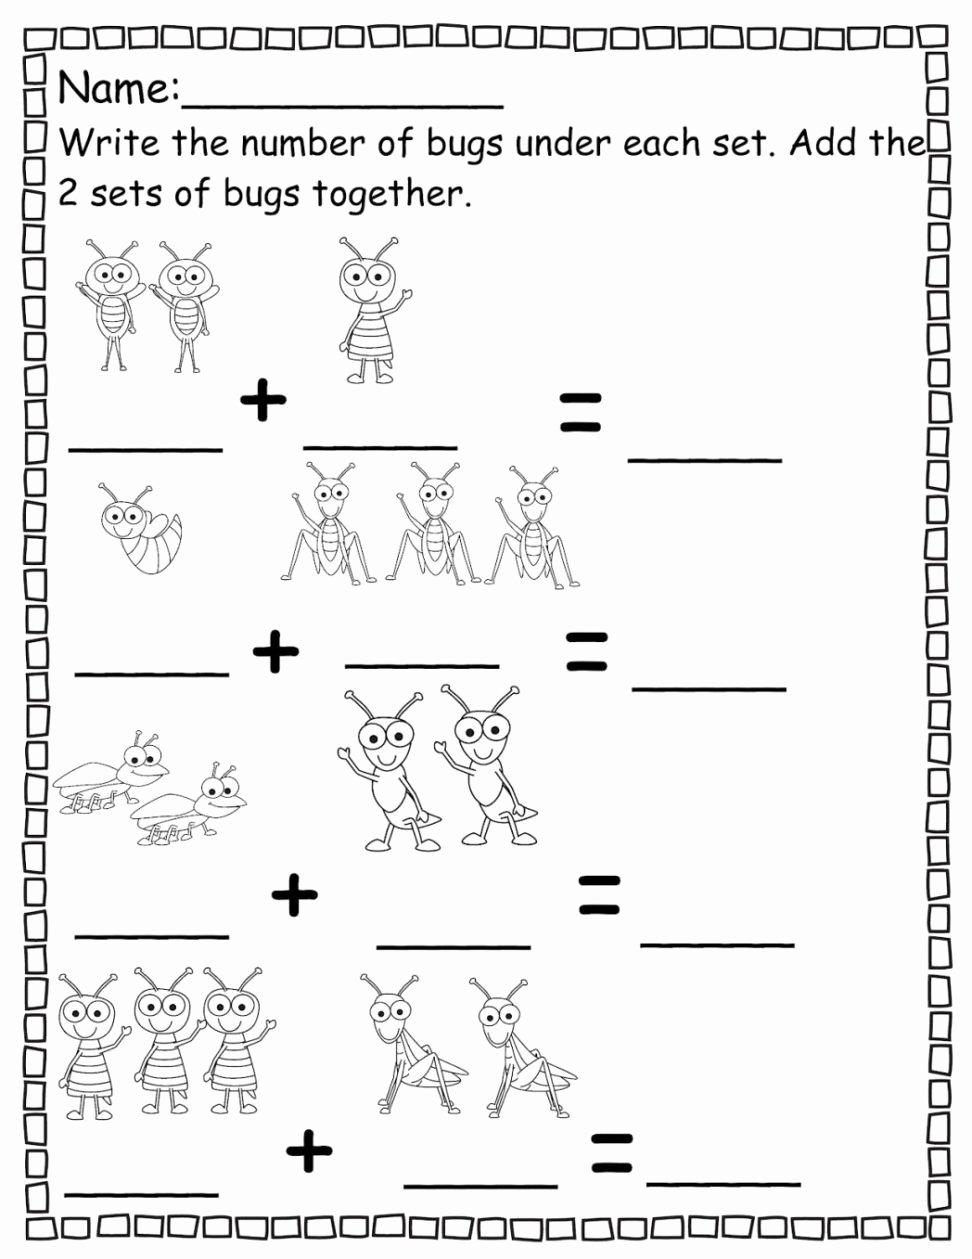 Kindergarten Math Worksheet Pdf Fresh Free Kindergarten Math Worksheets Chapter 2 Worksheet